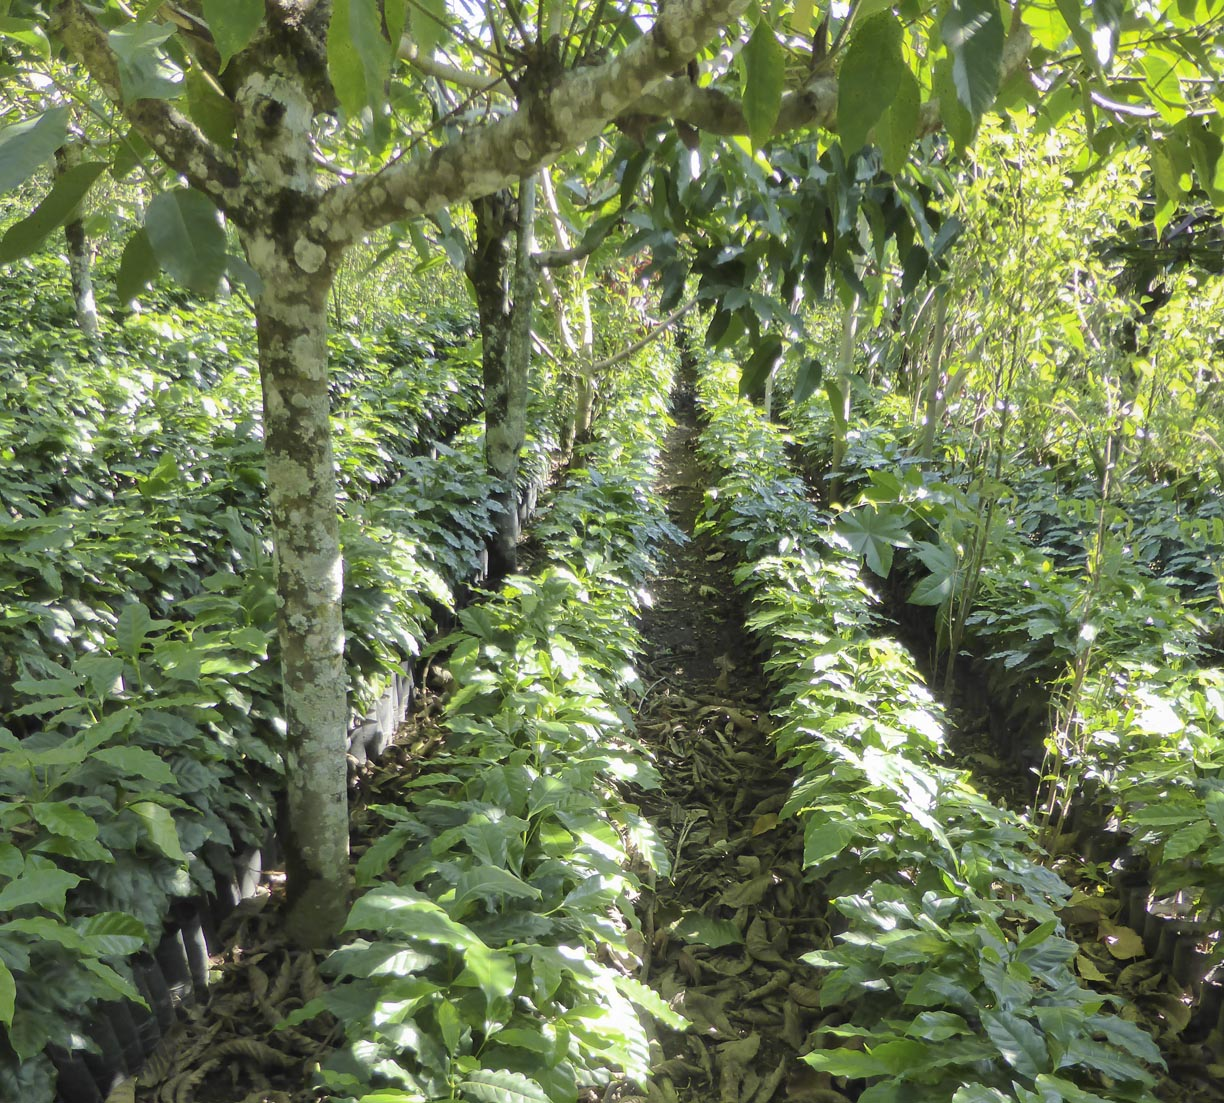 Sun Shining on Rows of Natural Shade Grown Coffee Saplings on Guatemalan Sustainable Coffee Farm